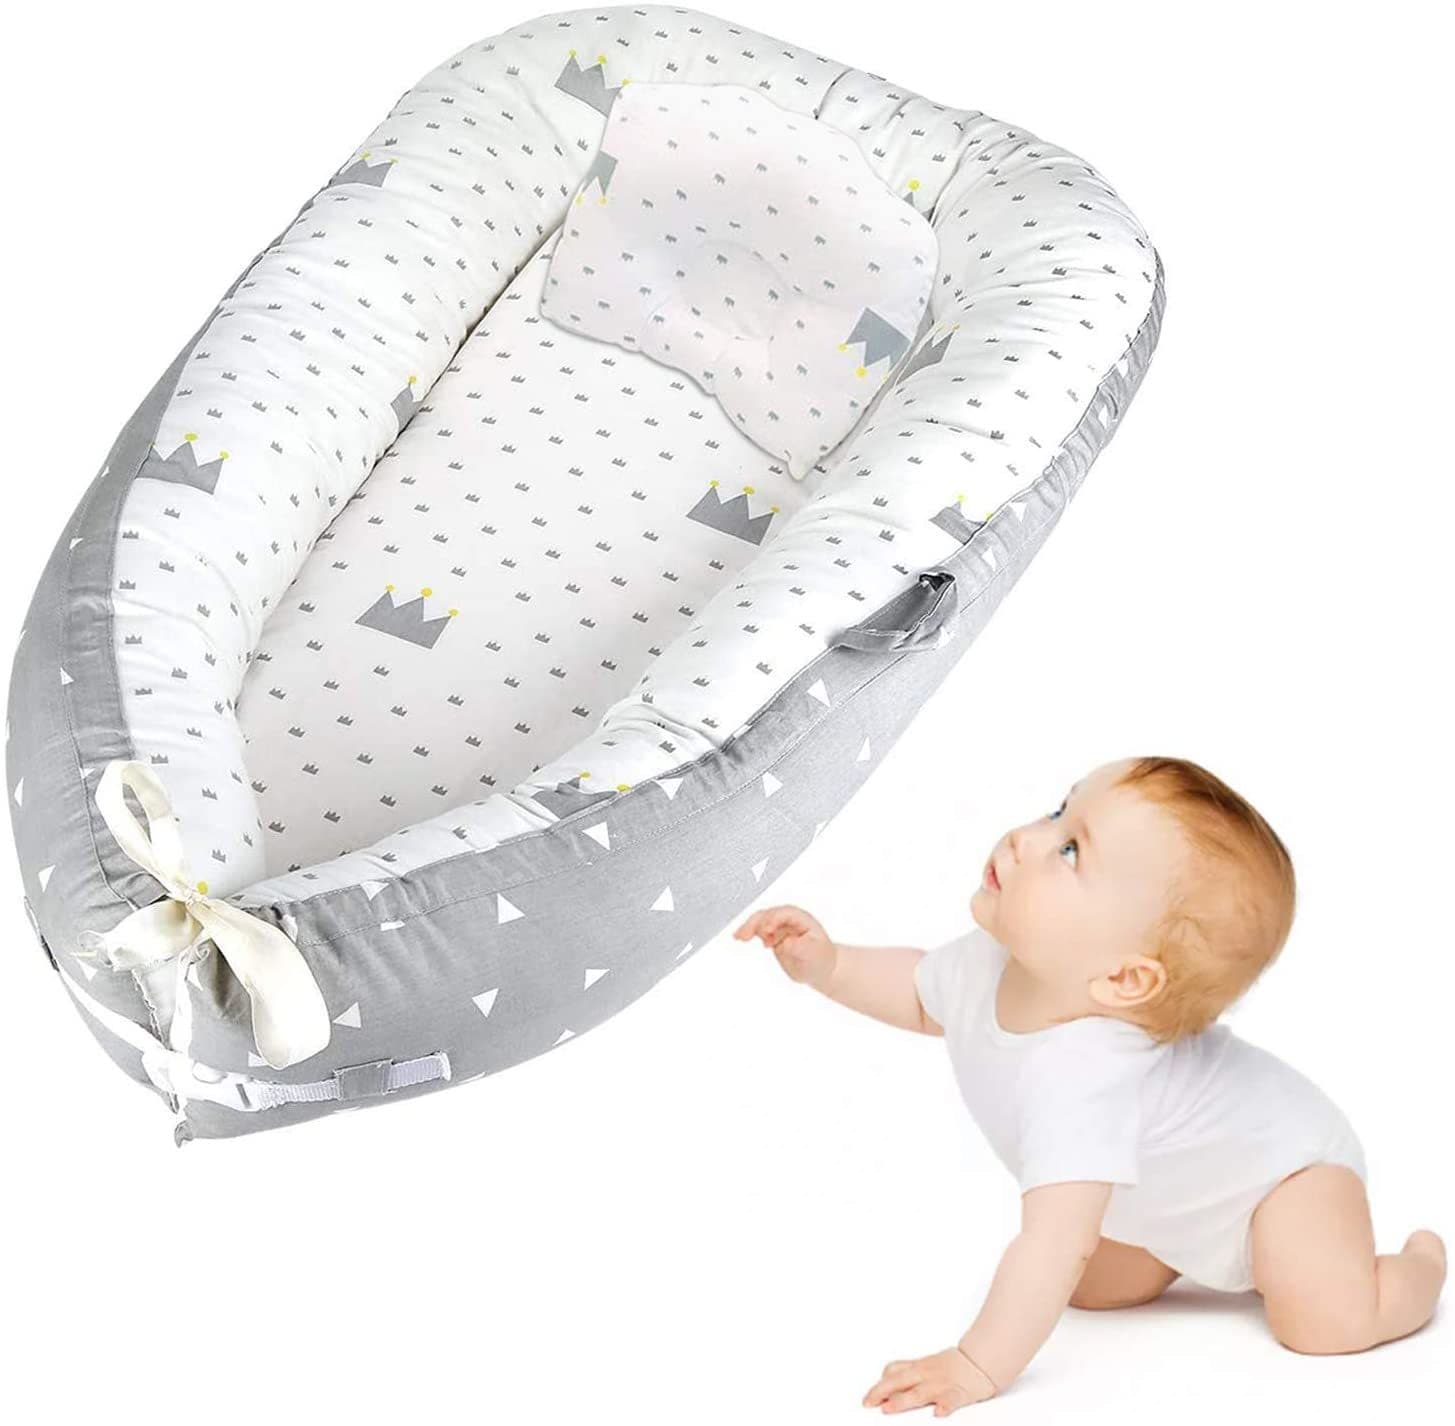 Comfortable white grey baby lounger with crow ang triangle design.